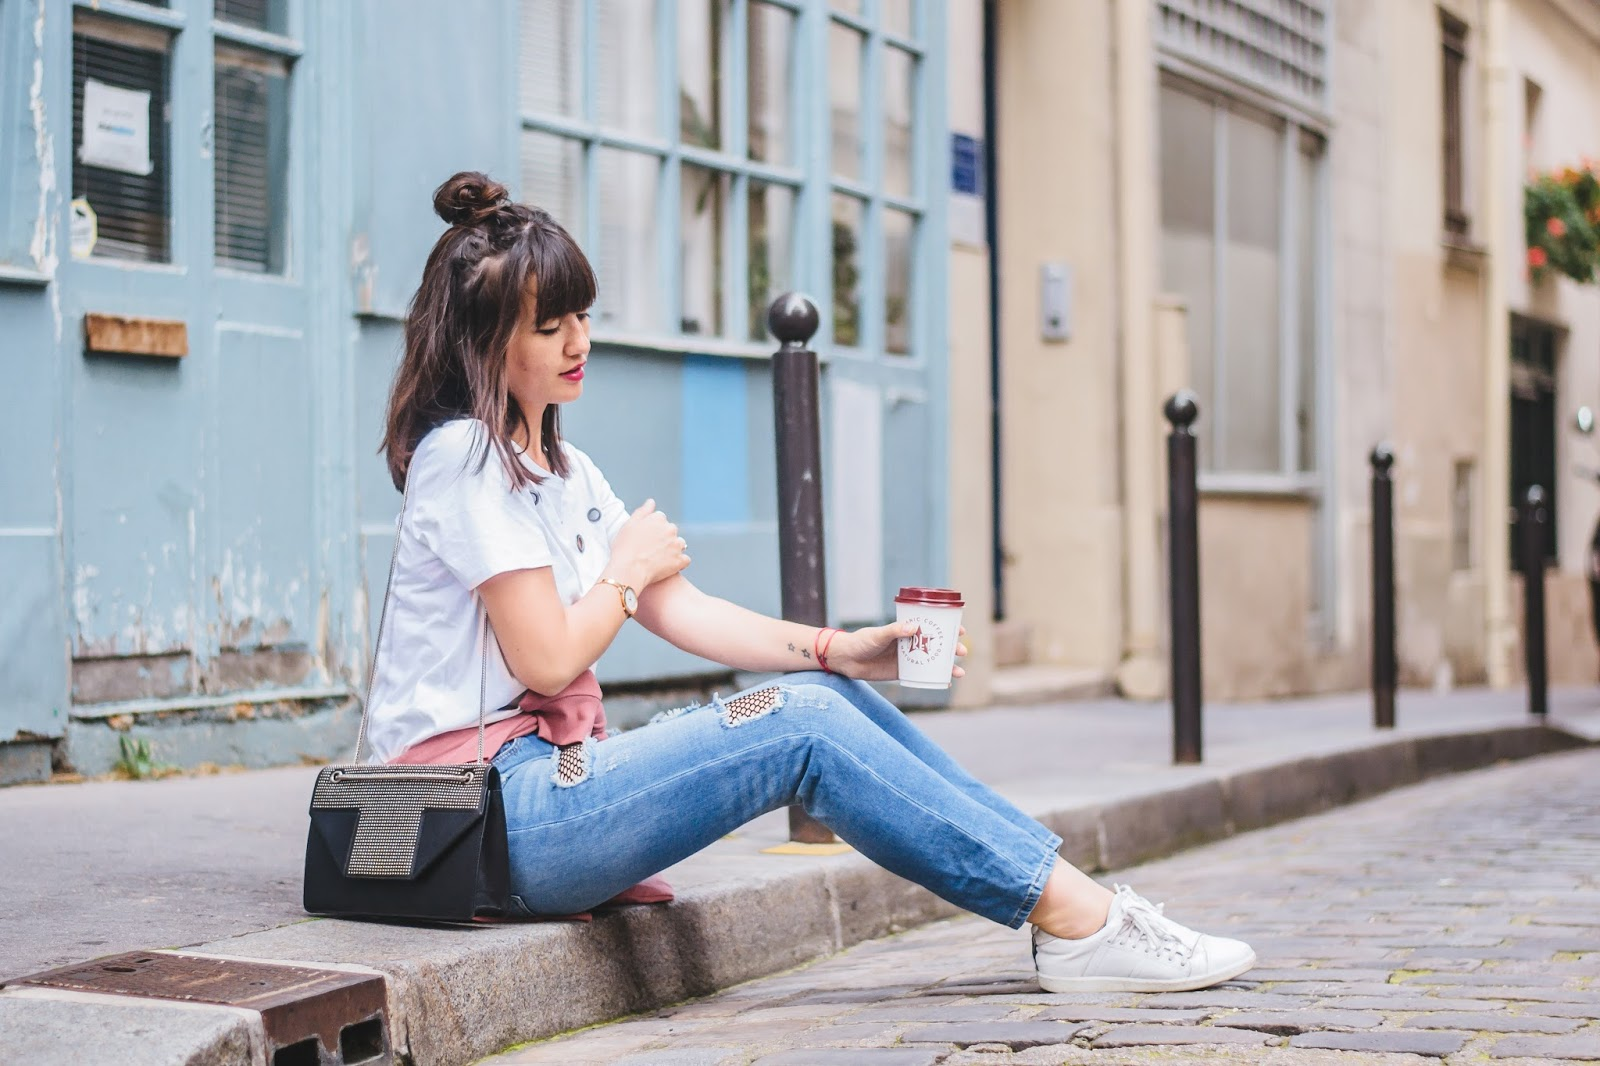 meetmeinparee-style-look-mode-fashion-streetstyle-fashion-ootd-parisianfashionblogger